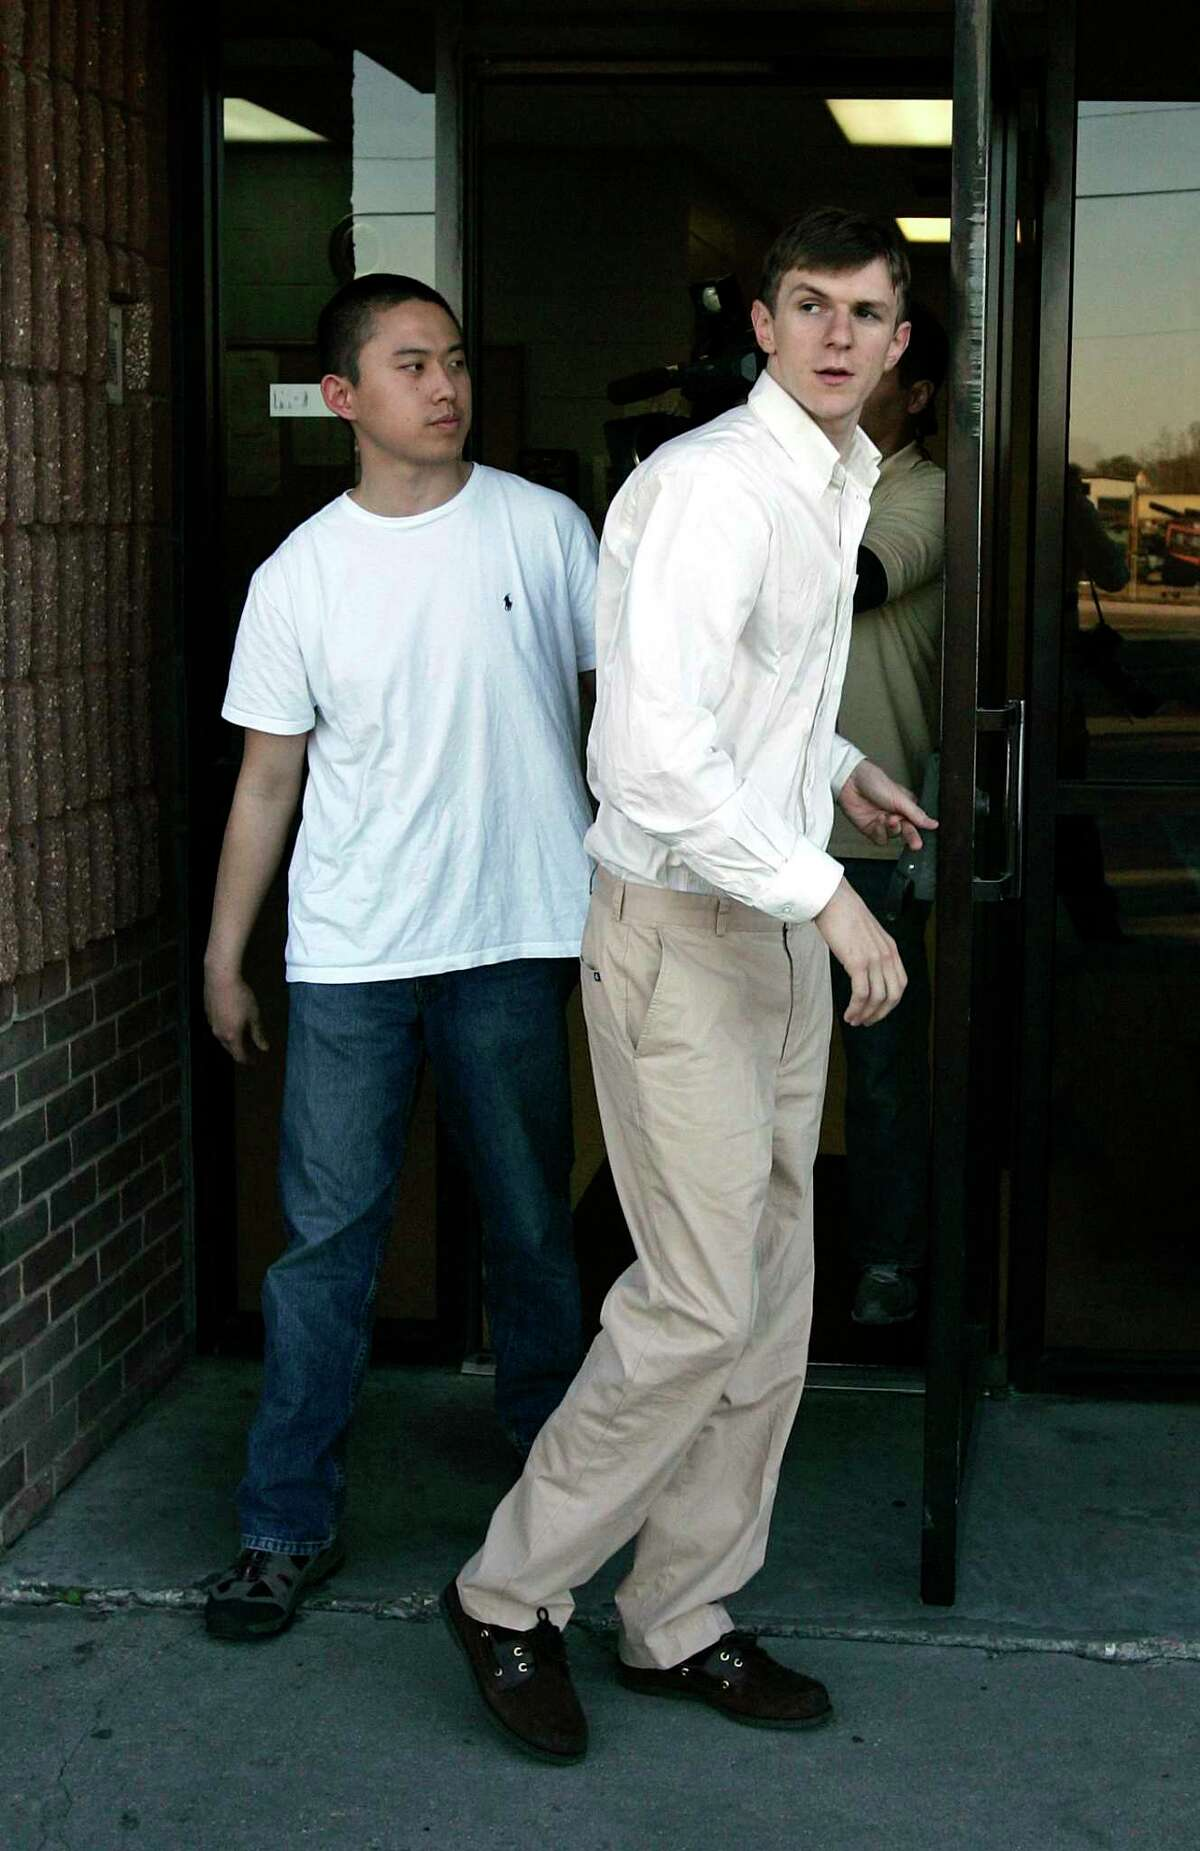 Stan Dai, left, and James O'Keefe walk out of the St. Bernard Parish jail in Chalmette, La., Tuesday, Jan. 26, 2010.